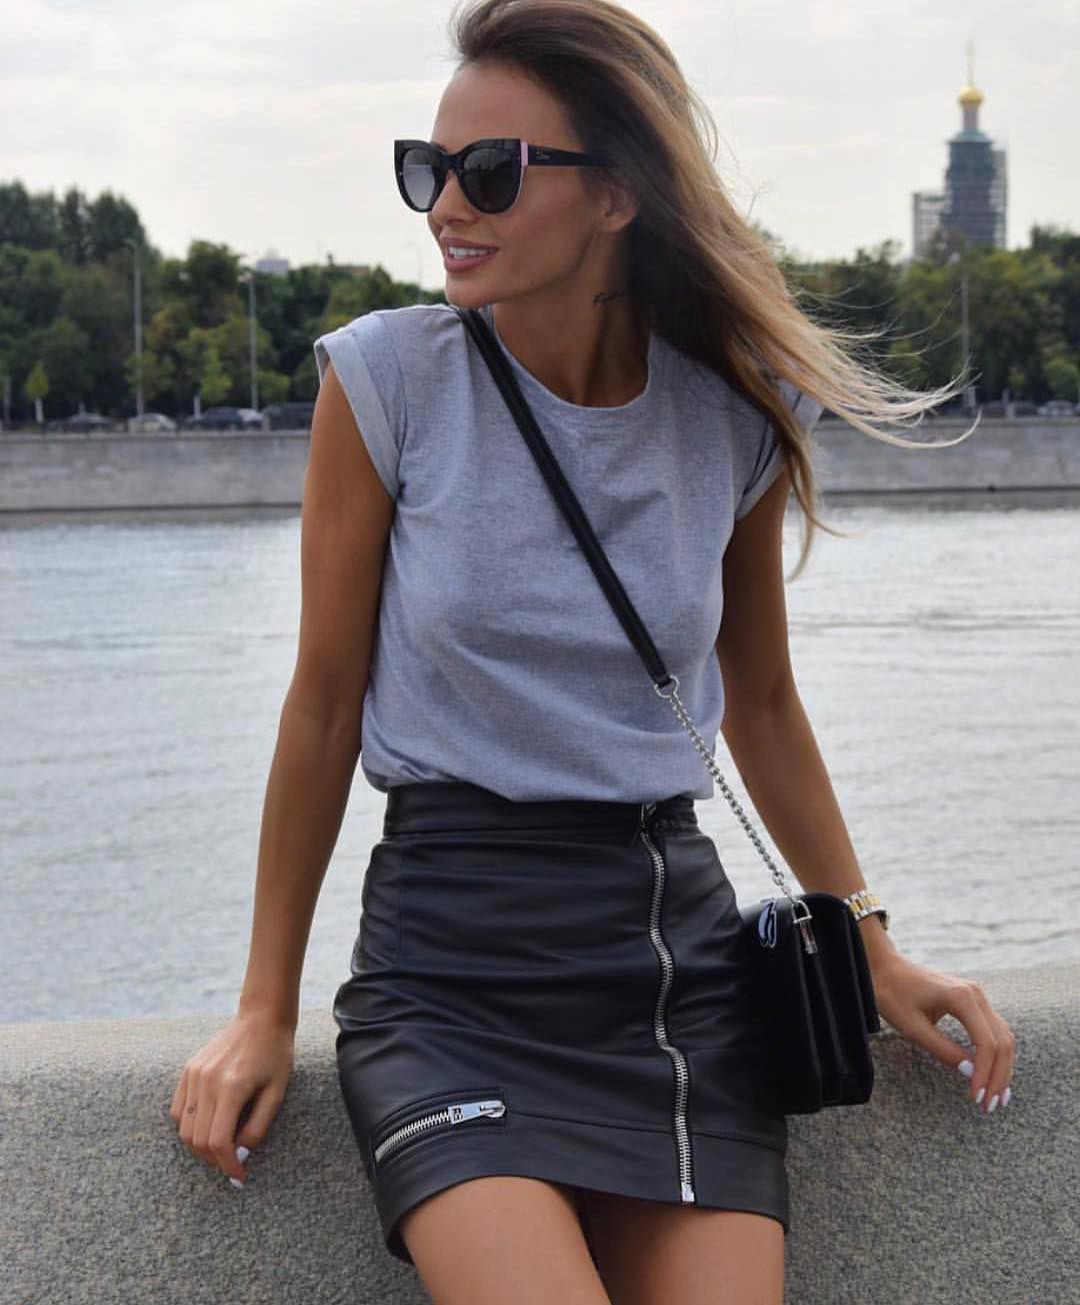 How To Wear Mini Black Leather Skirt With Zipper 2021